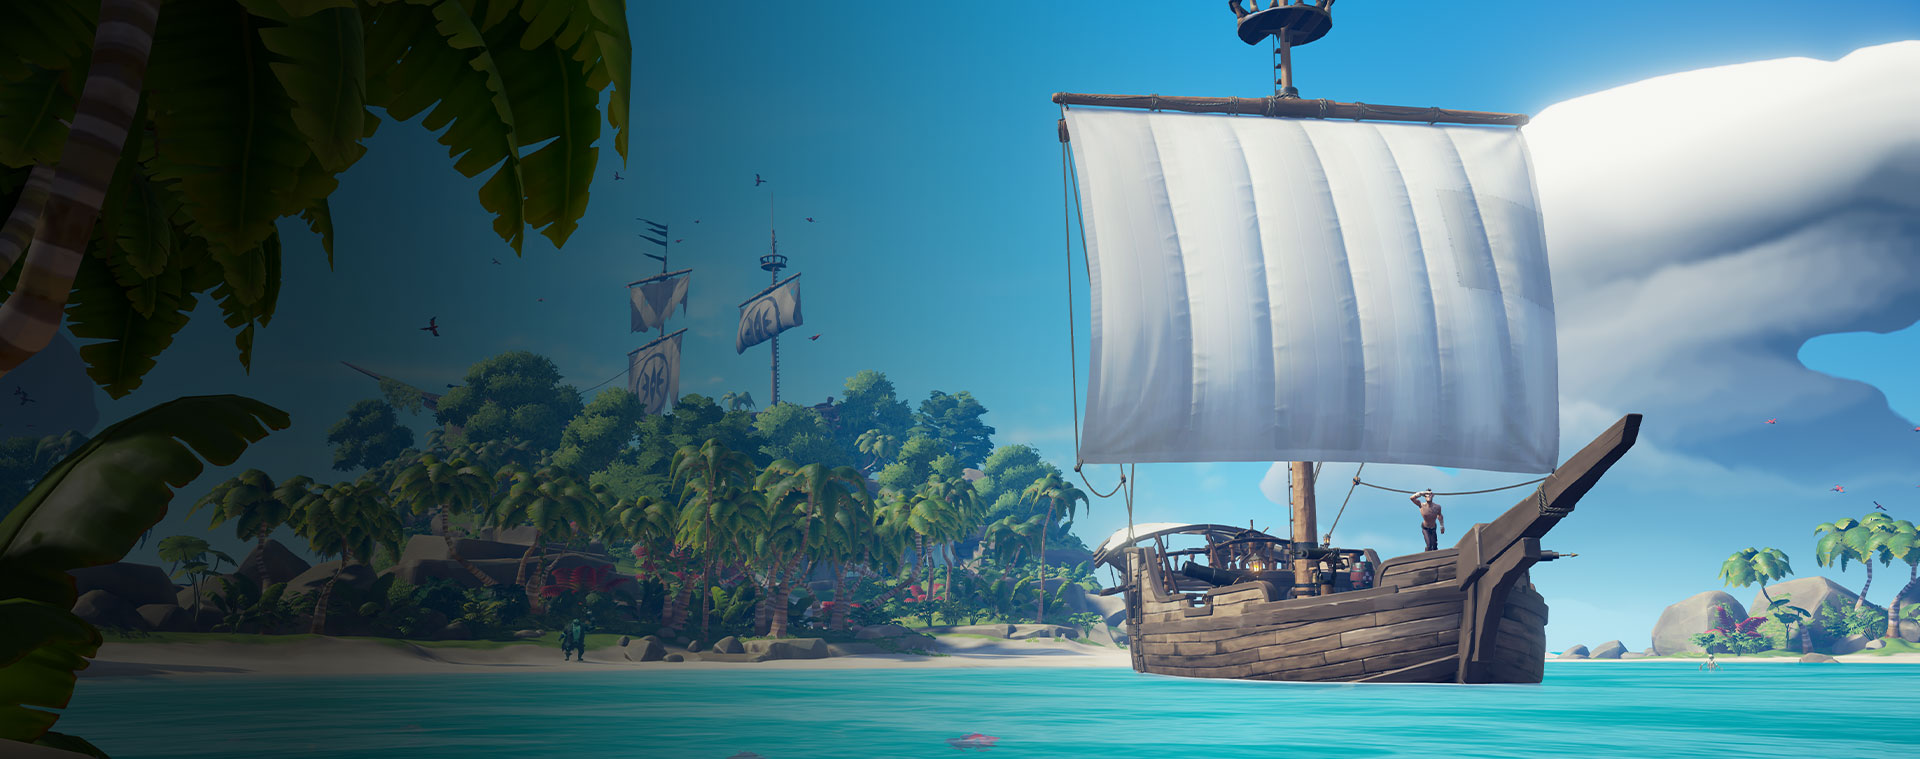 Un barco de Sea of Thieves alejándose de una isla